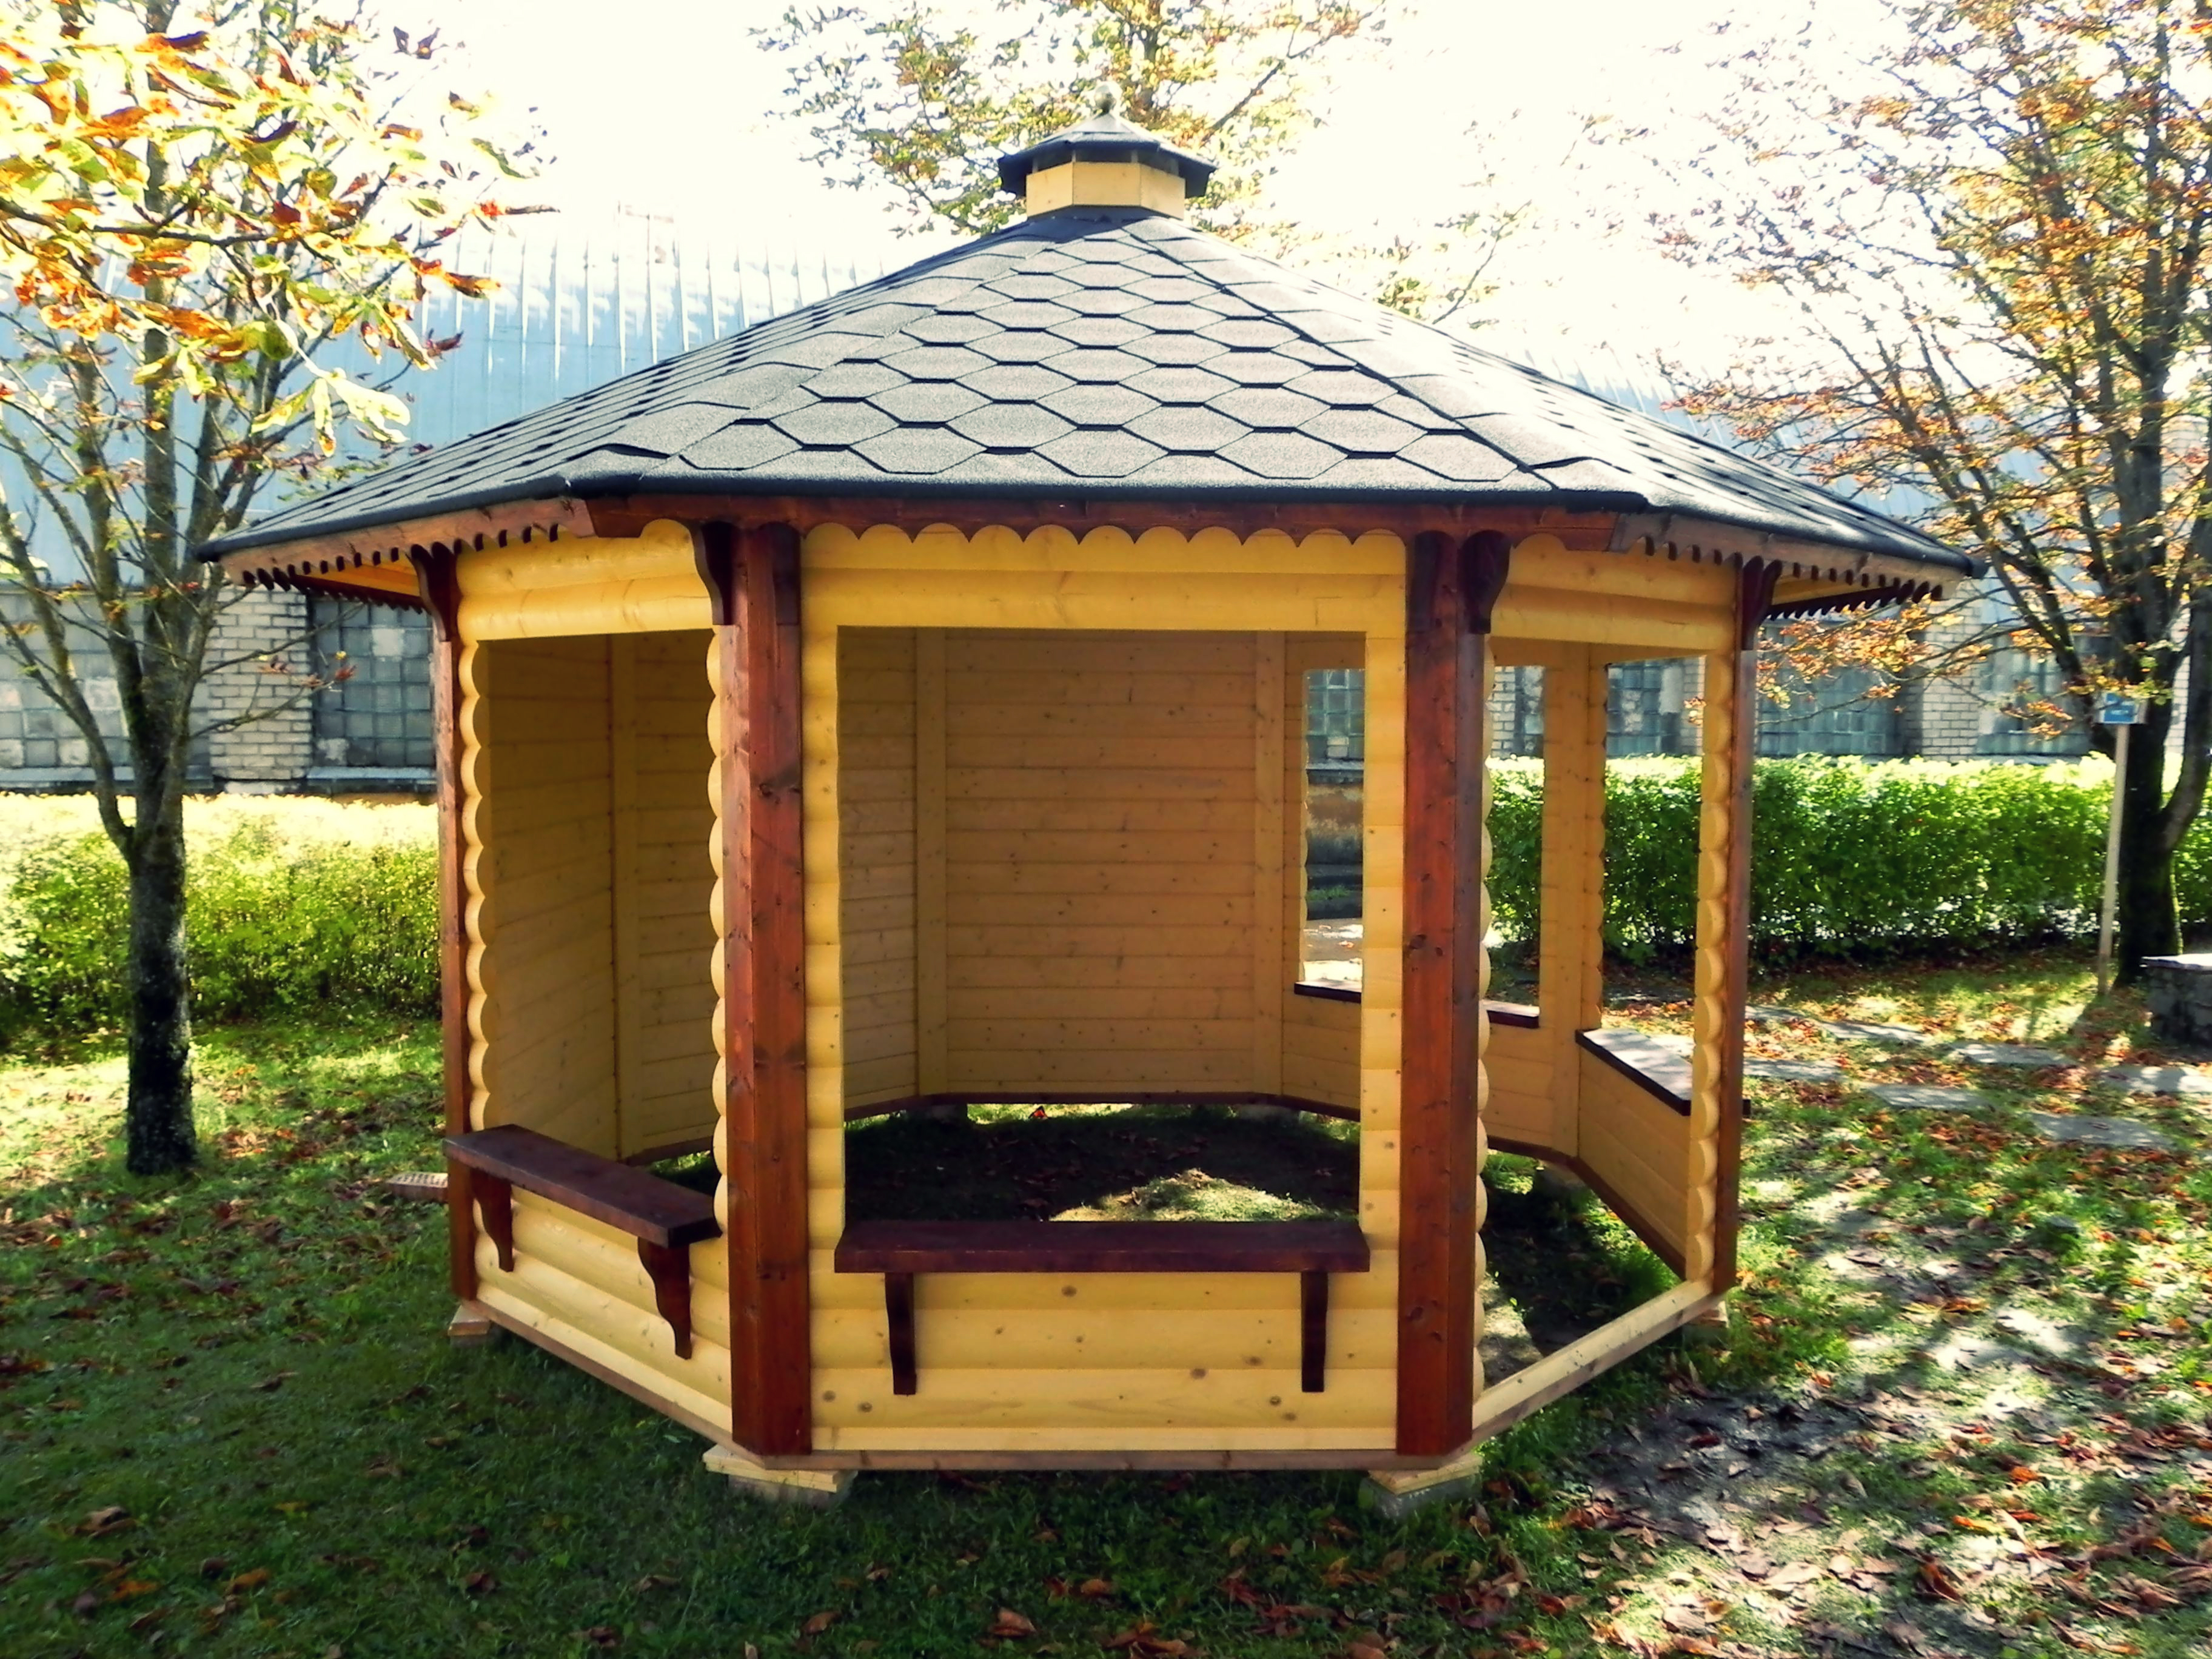 gartenpavillon aus holz mit offenen und zuenen w nden. Black Bedroom Furniture Sets. Home Design Ideas